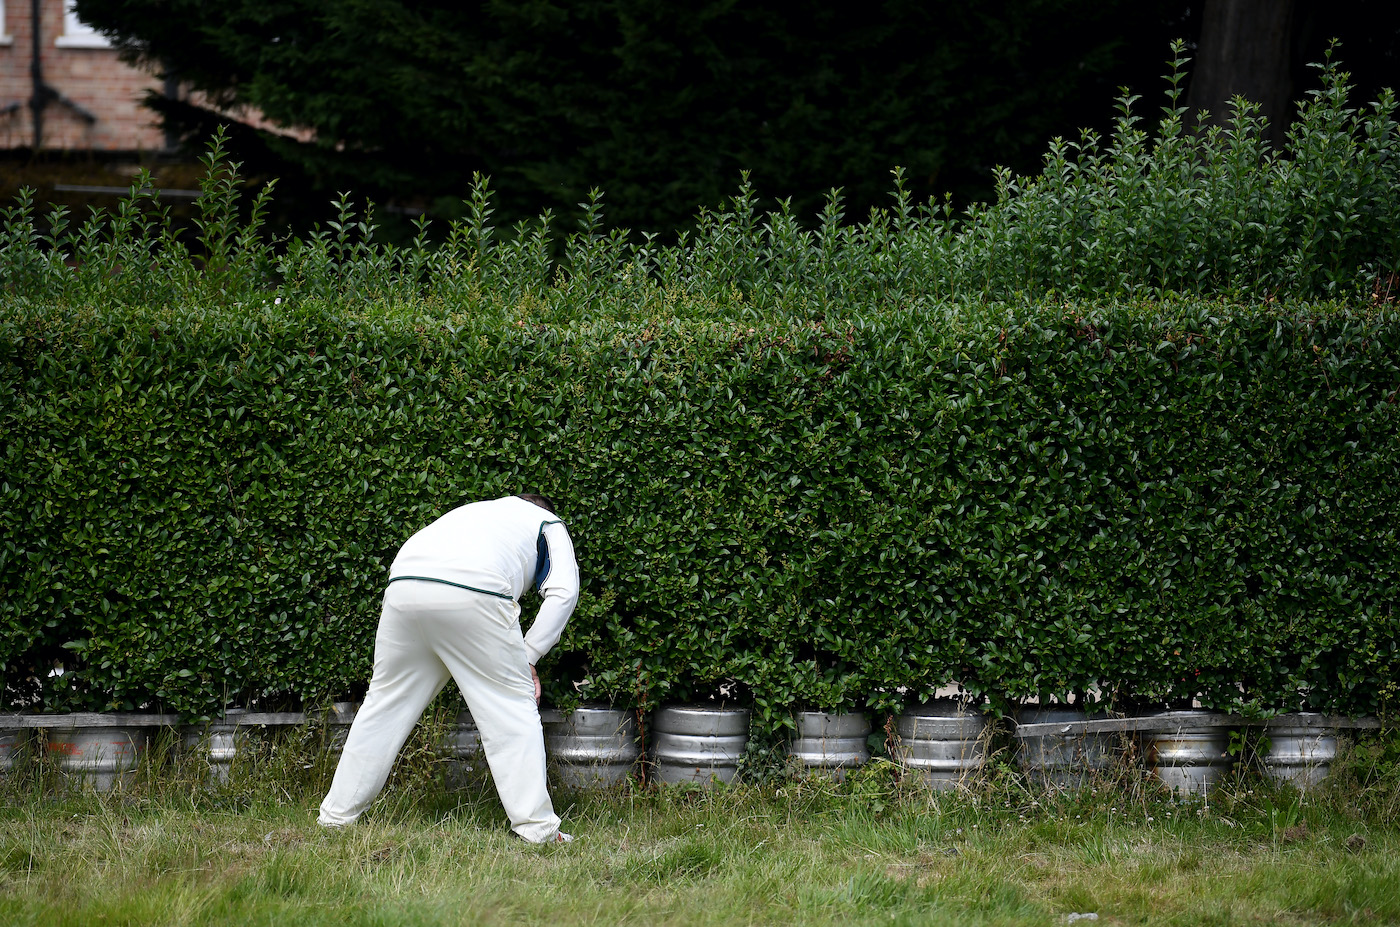 If there's a bustle in your hedgerow don't be alarmed now - it's just a fielder from the village green